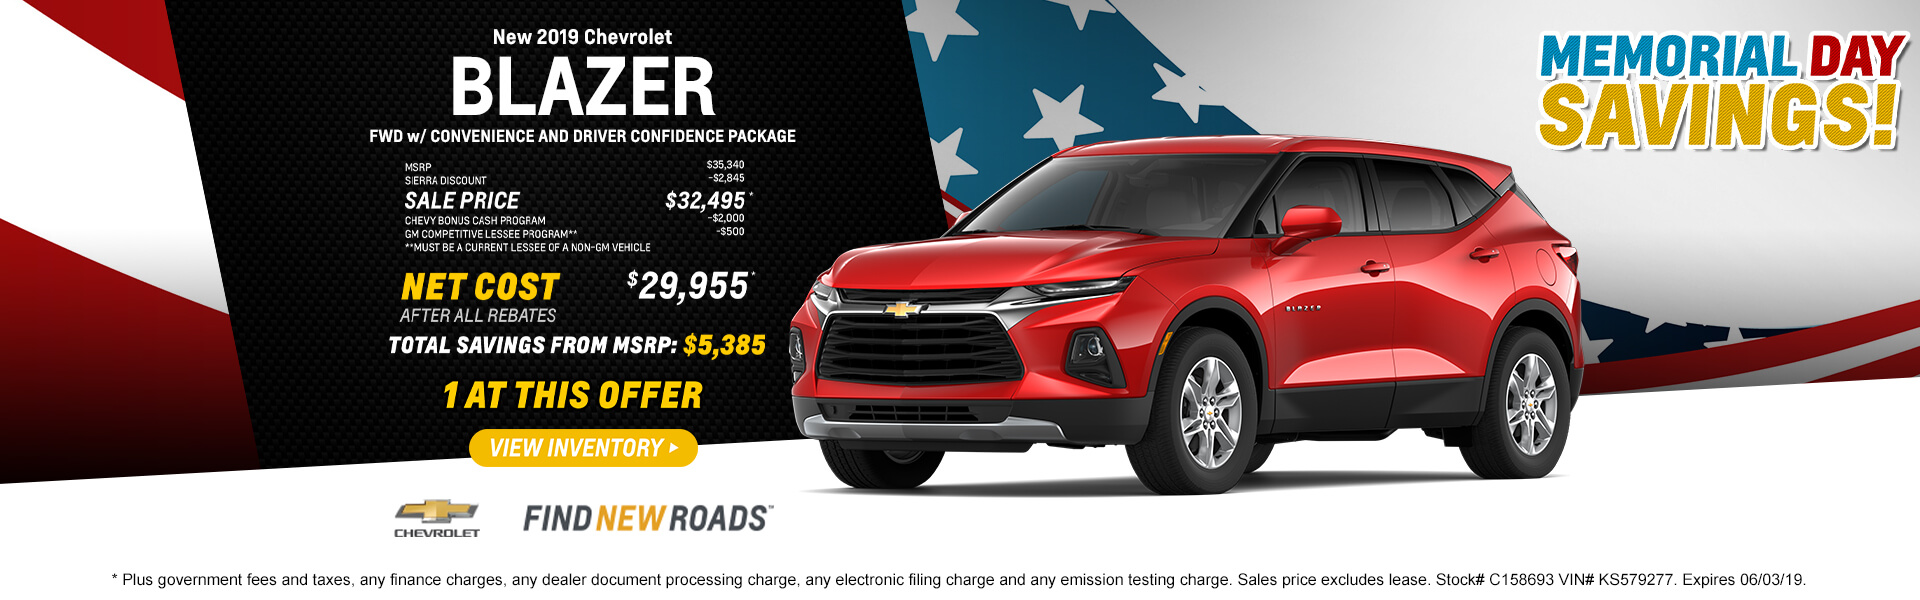 2019 CHEVROLET BLAZER FWD Convenience and Drive Confidence Pkg  MSRP $35,340 SIERRA DISCOUNT -$2,845 SALE PRICE $32,495* CHEVY BONUS CASH PROGRAM -$2,000 GM COMPETITIVE LESSEE PROGRAM** -$500 **MUST BE A CURRENT LESSEE OF A NON-GM VEHICLE  NET COST AFTER DISCOUNT & REBATES $29,955*  1 AT THIS OFFER  * Plus government fees and taxes, any finance charges, any dealer document processing charge, any electronic filing charge and any emission testing charge. Sales price excludes lease. Stock# C158693 VIN# KS579277. Expires 06/03/19.